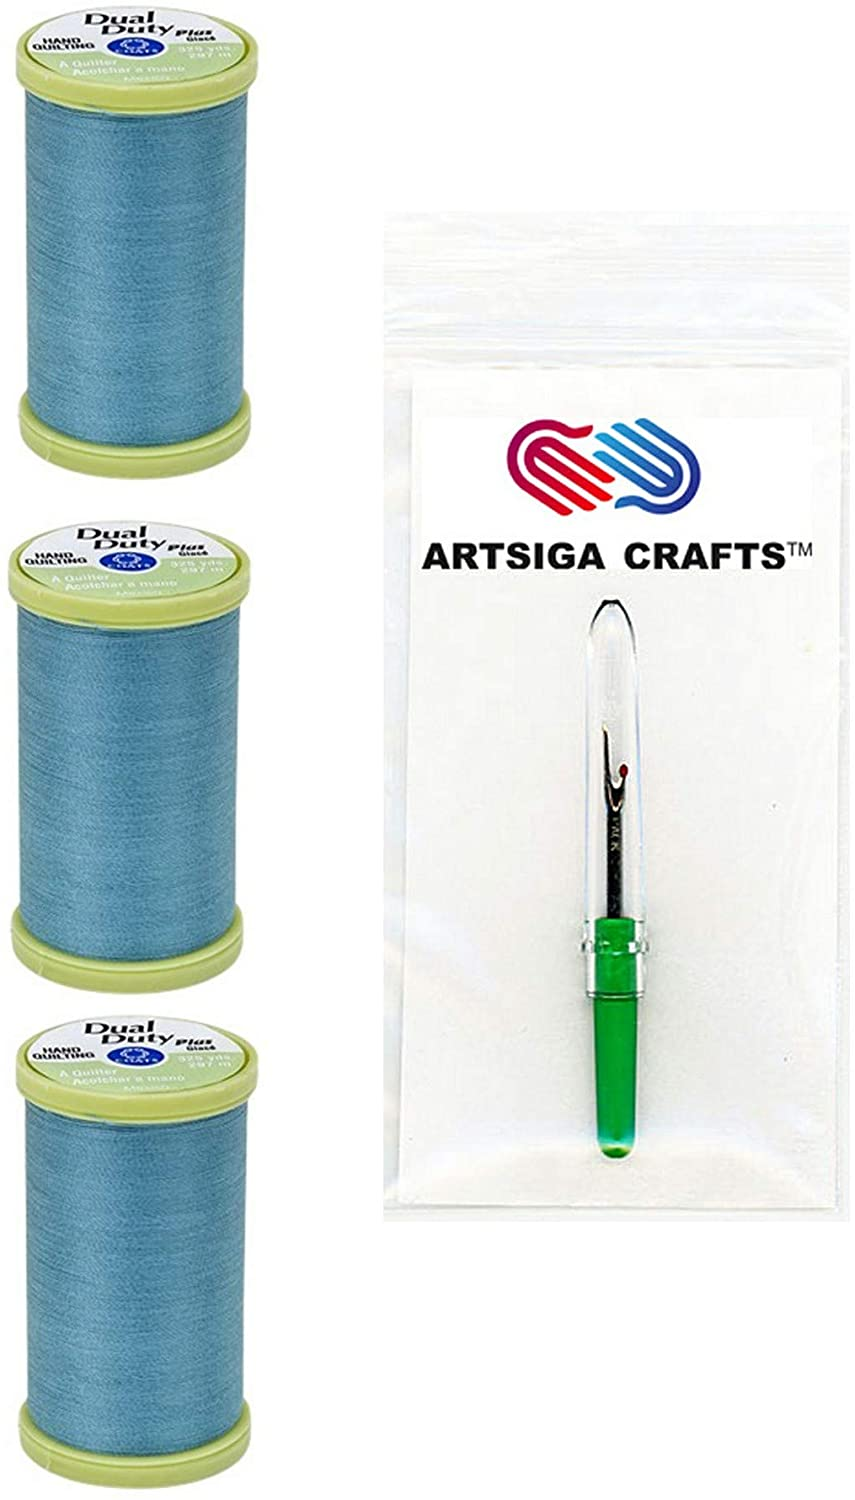 Coats & Clark Sewing Thread Dual Duty Plus Hand Quilting Cotton Thread 325 Yards (3-Pack) River Blue Bundle with 1 Artsiga Crafts Seam Ripper S960-5450-3P